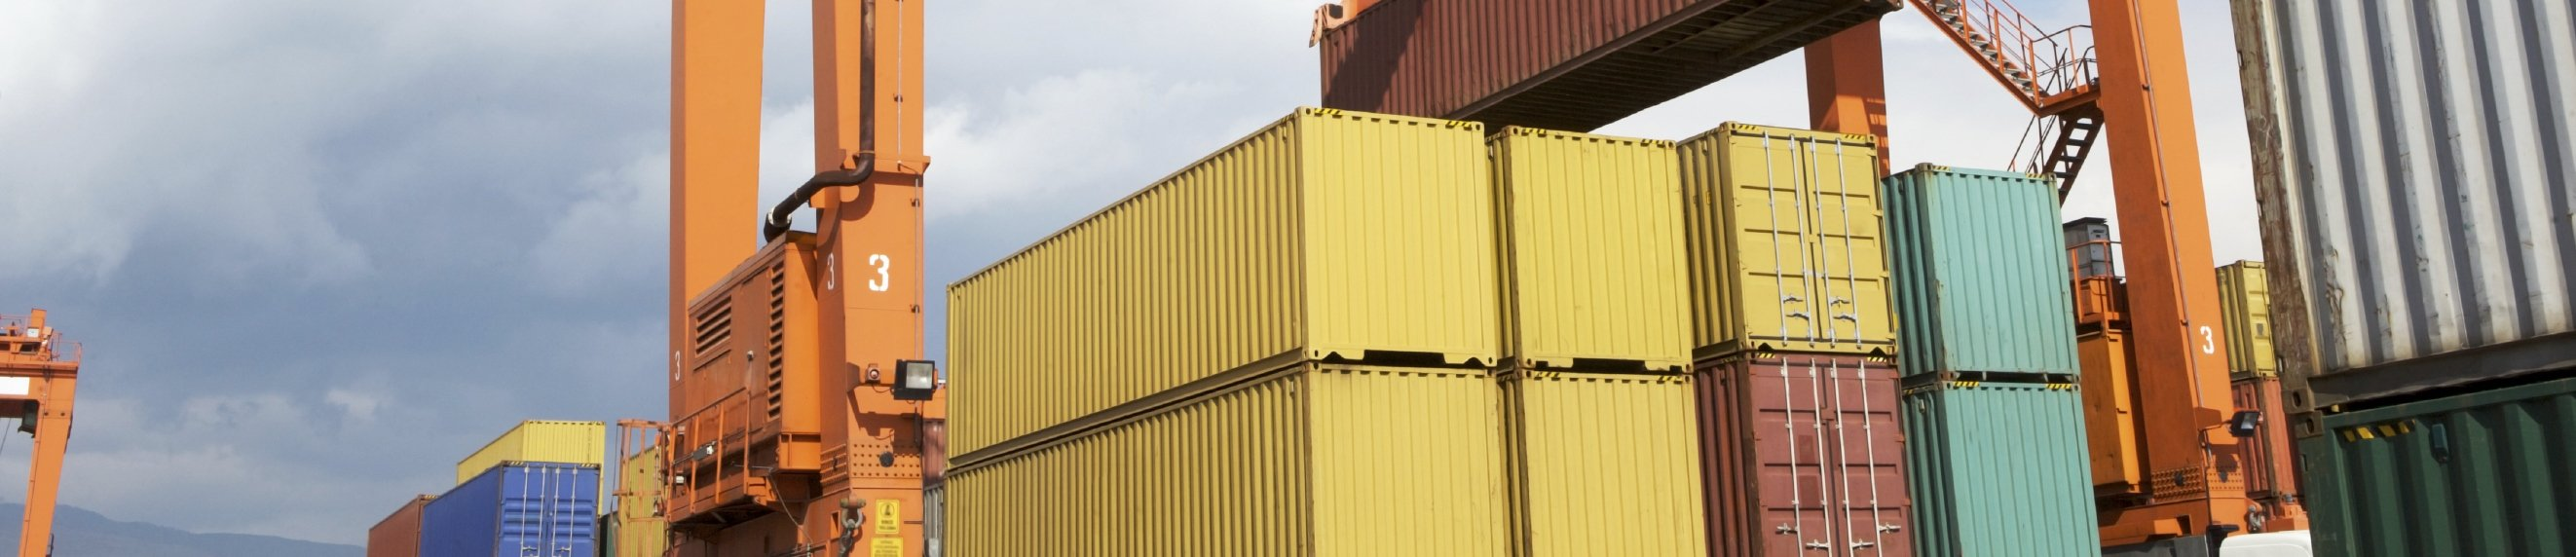 View of the container